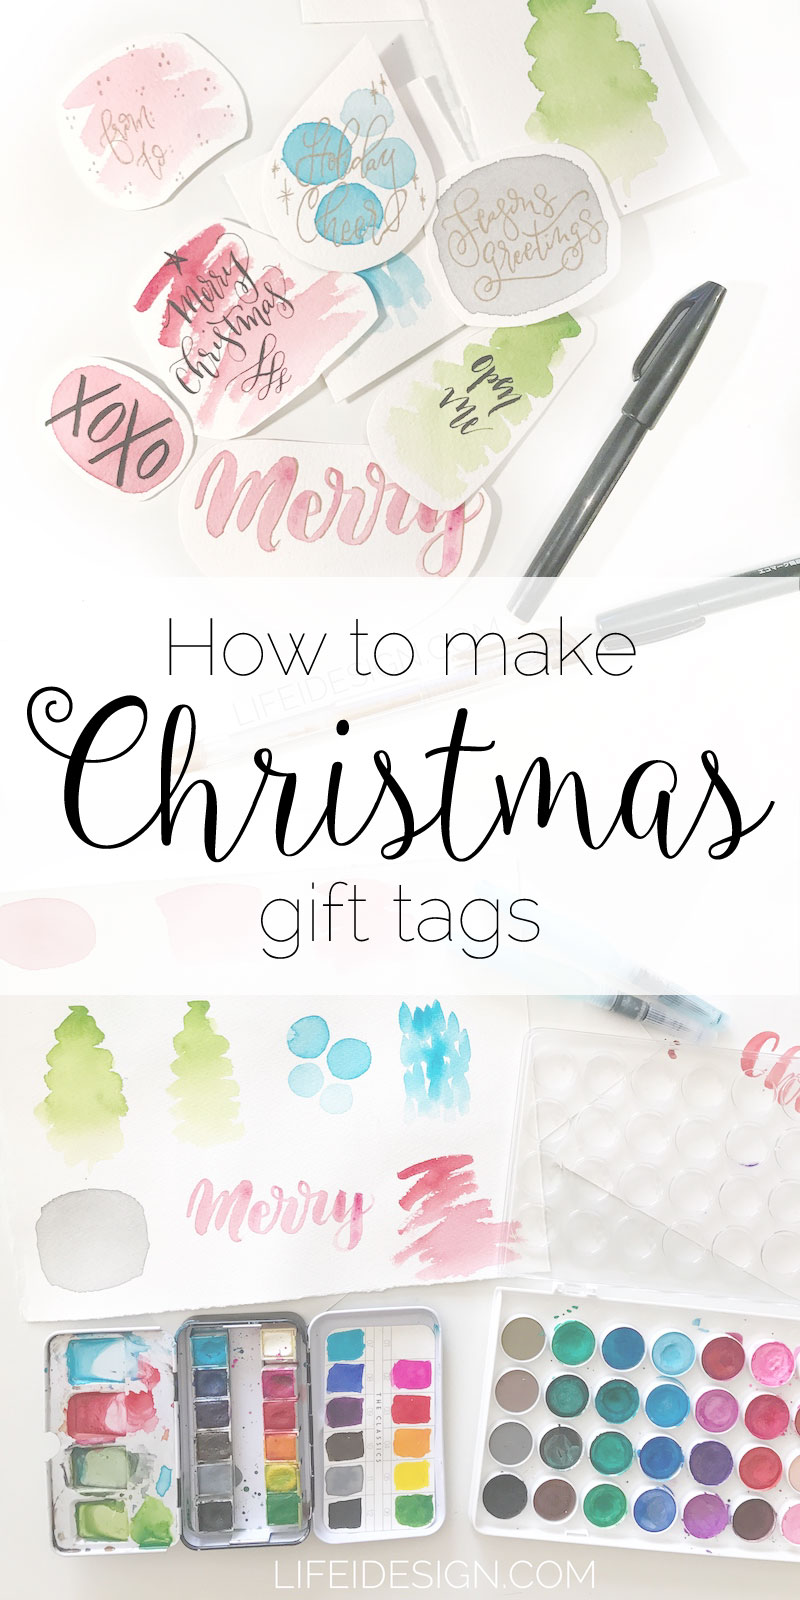 how-to-make-christmas-gift-tag.jpg